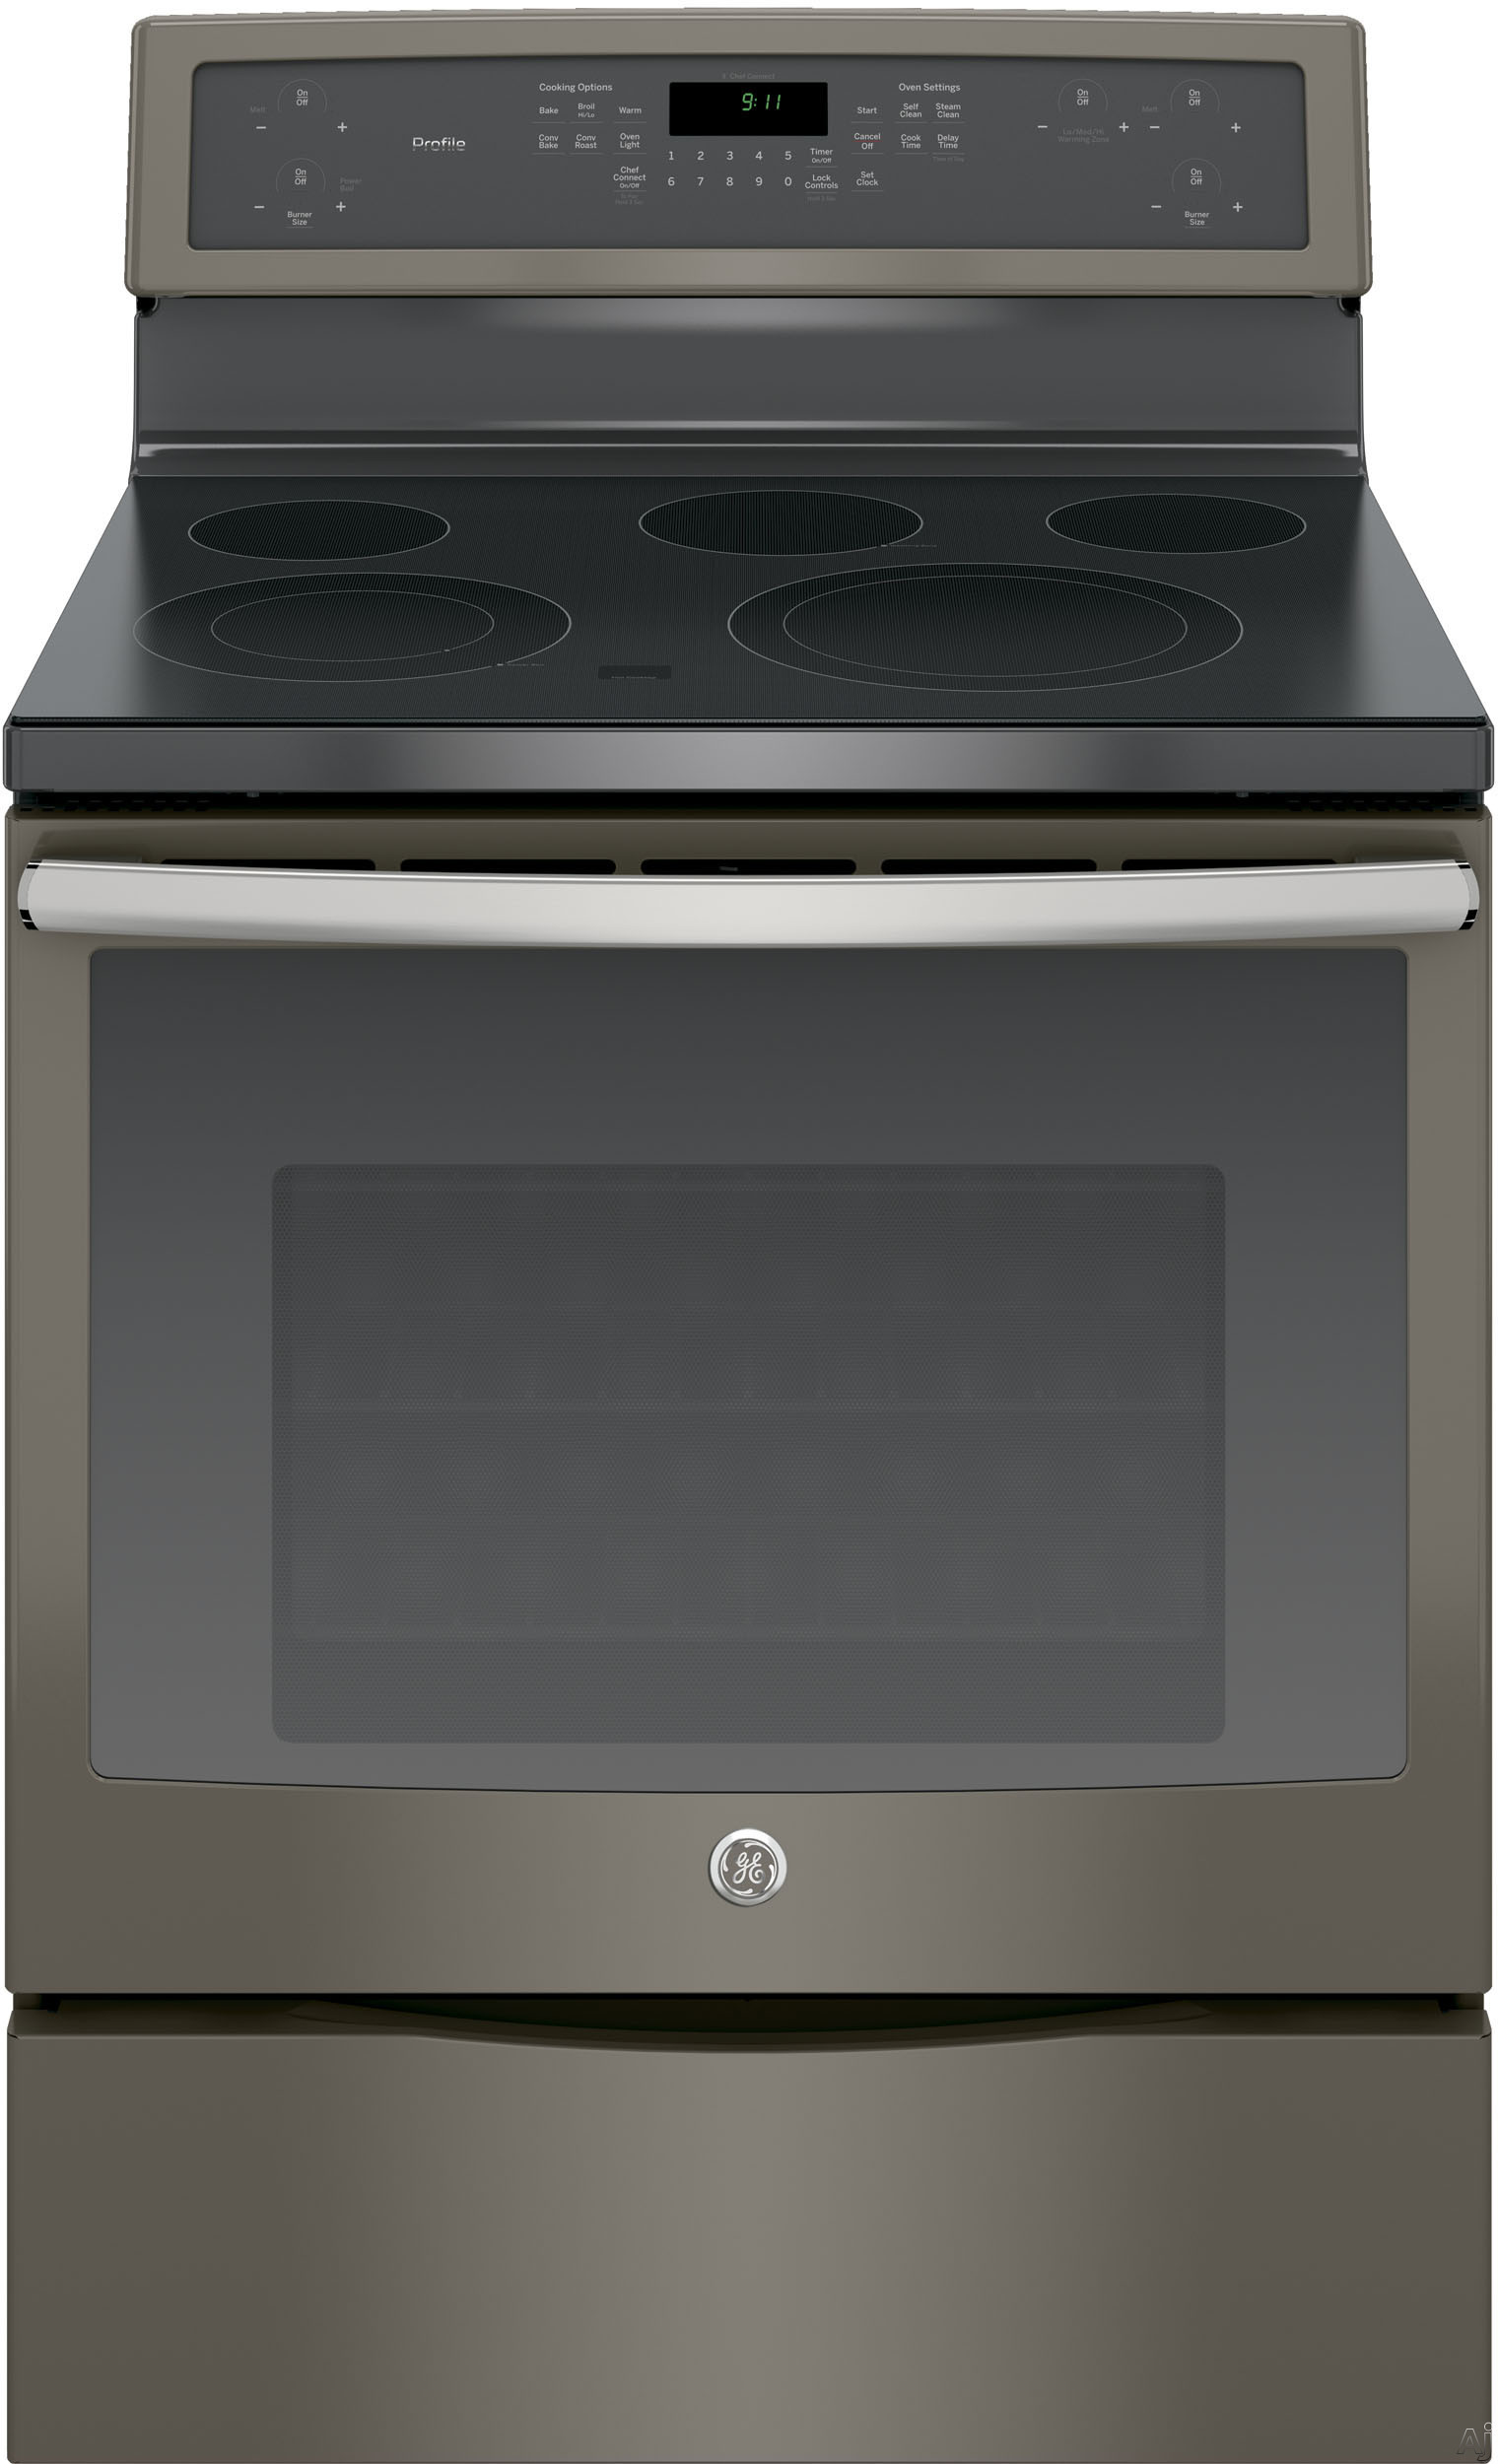 GE Profile PB911EJES 30 Inch Freestanding Electric Range with True Convection, Chef Connect, Fast Preheat, Power Boil Element, Variable Element, Warming Zone, Storage Drawer, Steam Self-Clean, 5 Smoot